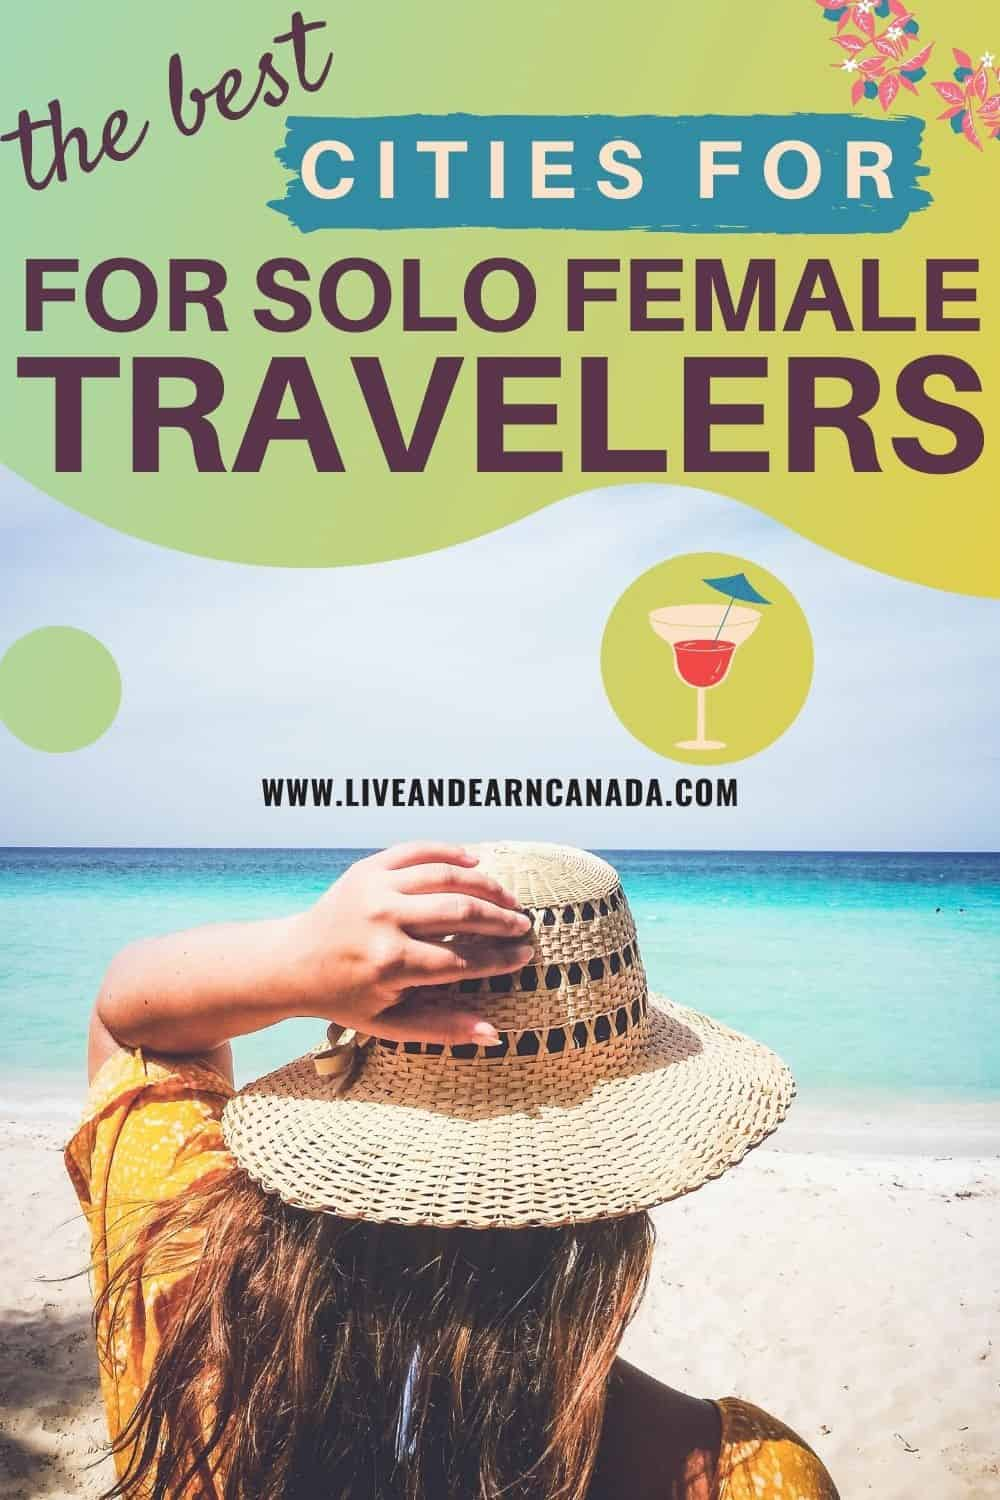 Here some of the best cities for solo female travelers. Traveling solo for the first time can be intimidating, here is a list of some best cities for solo travel. If you are looking for unique travel destinations then check out this comprehensive list. Beaches, historic towns, volcanoes, all beautiful and serene. #travelcities